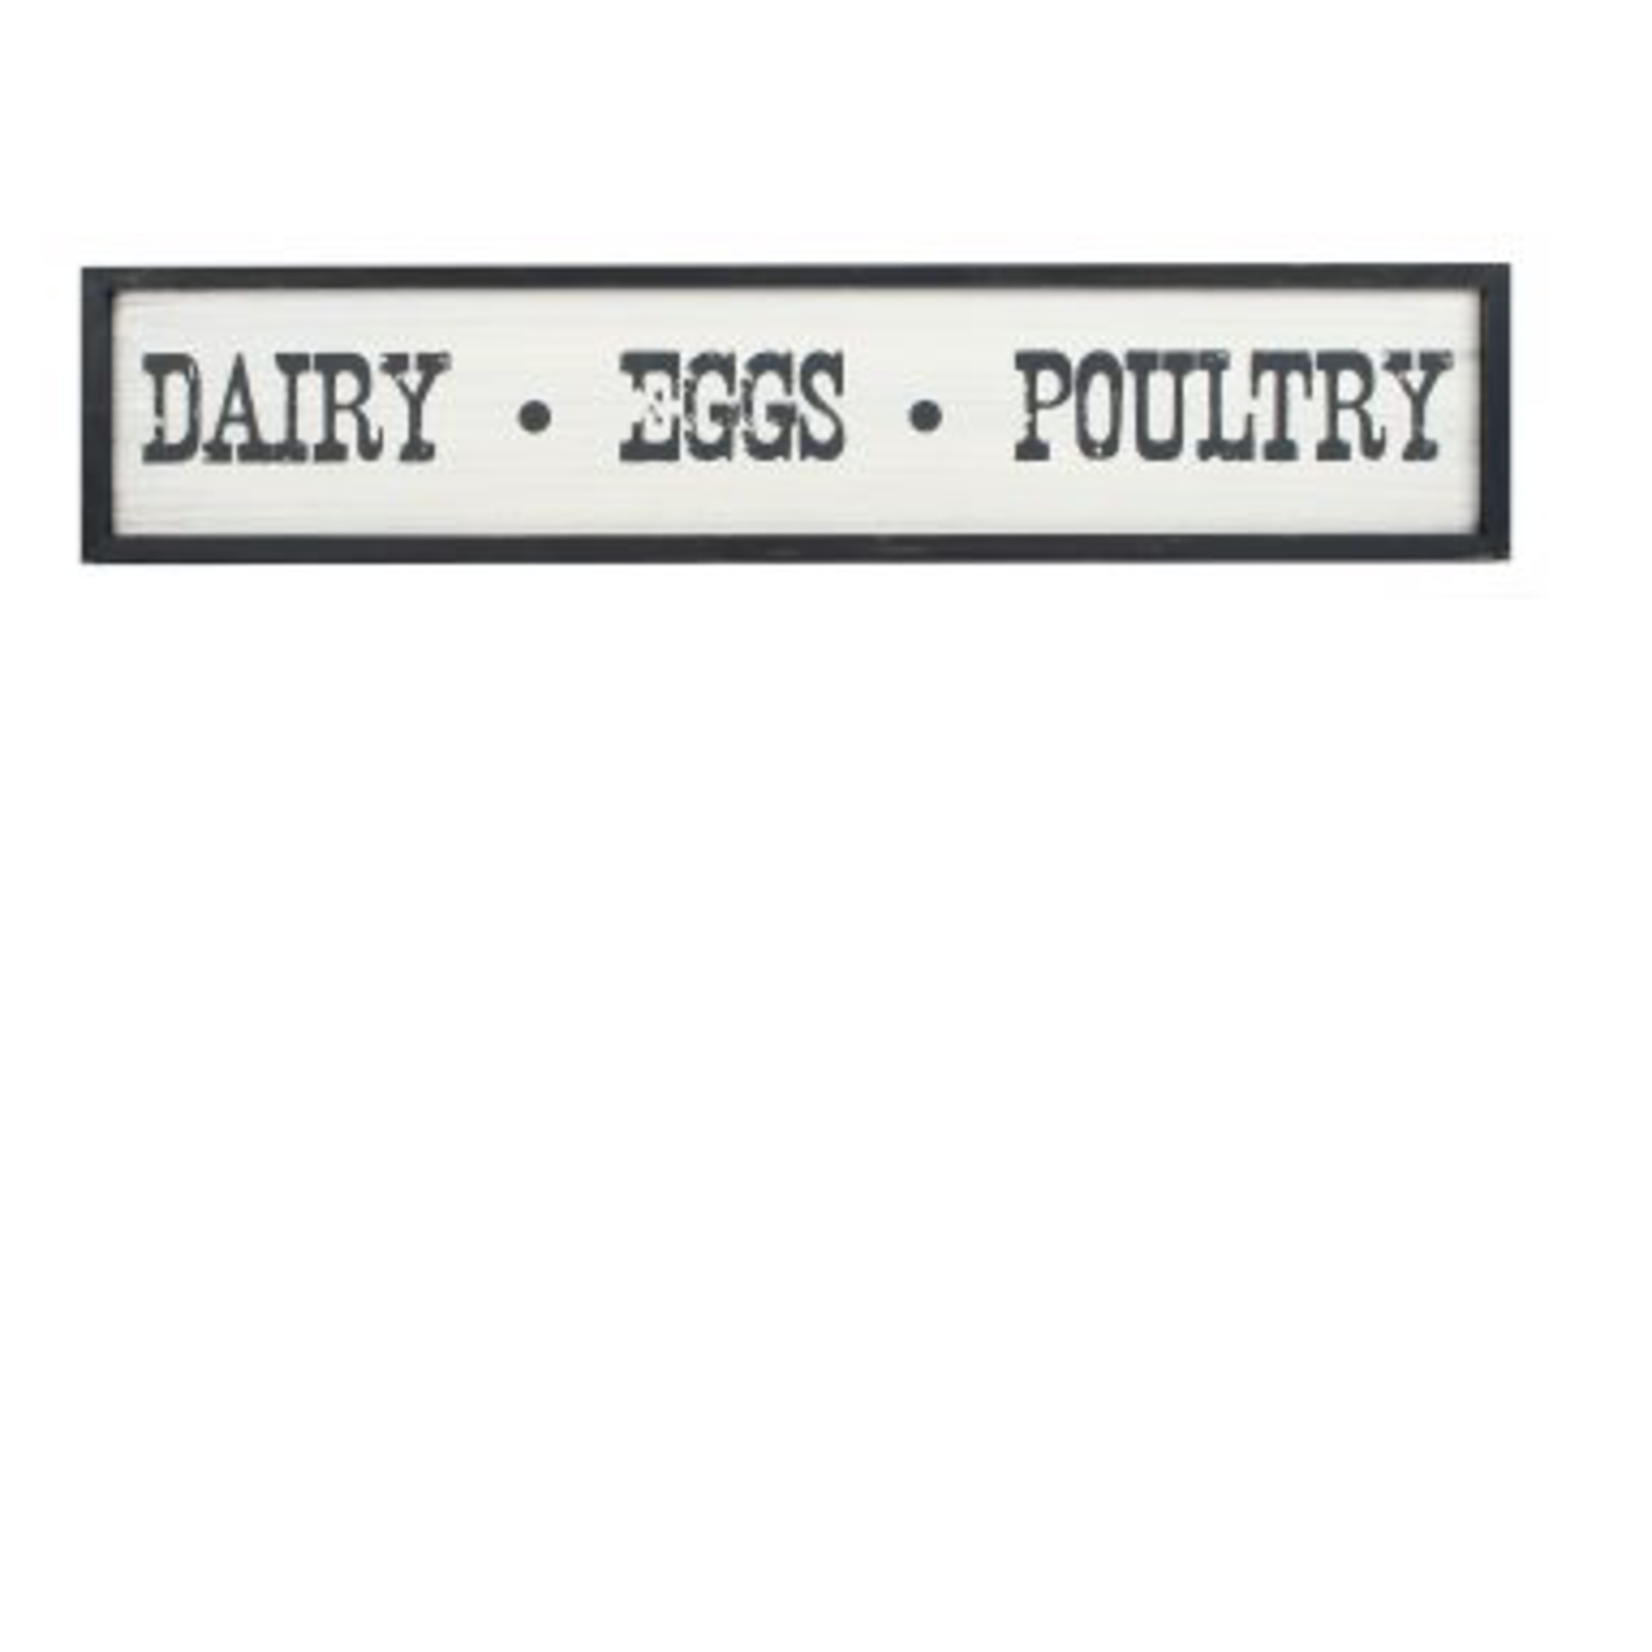 Dairy Eggs Poultry Sign